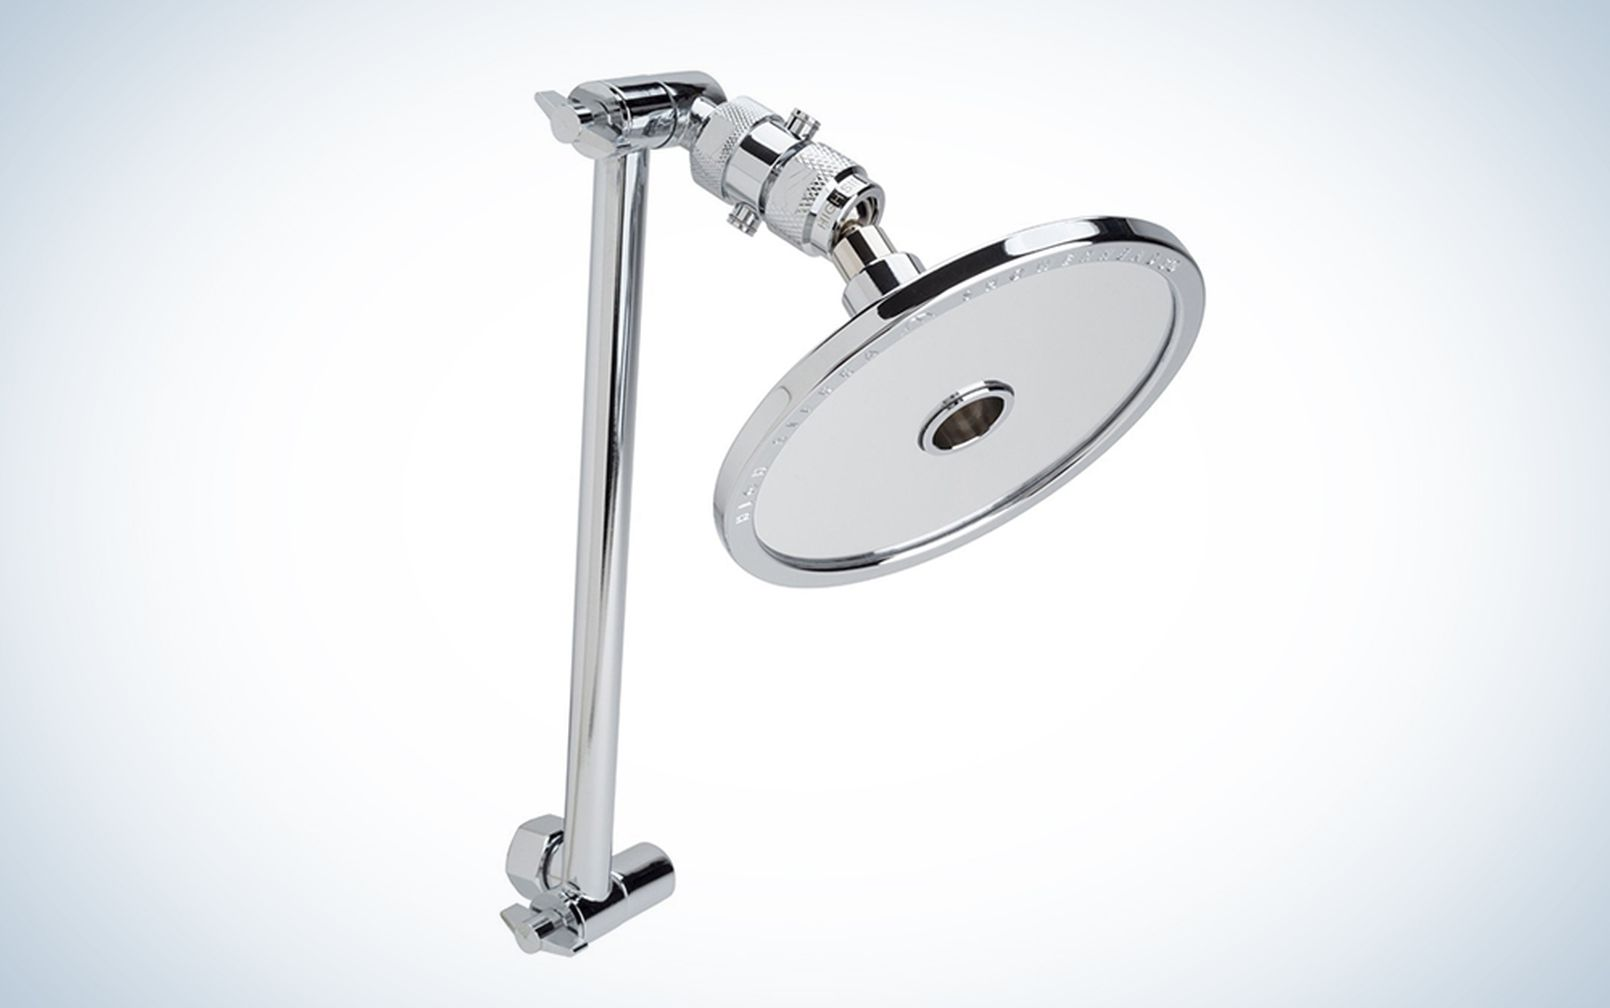 Showerhead Upgrades That Ll Turn Your Daily De Grime Into A